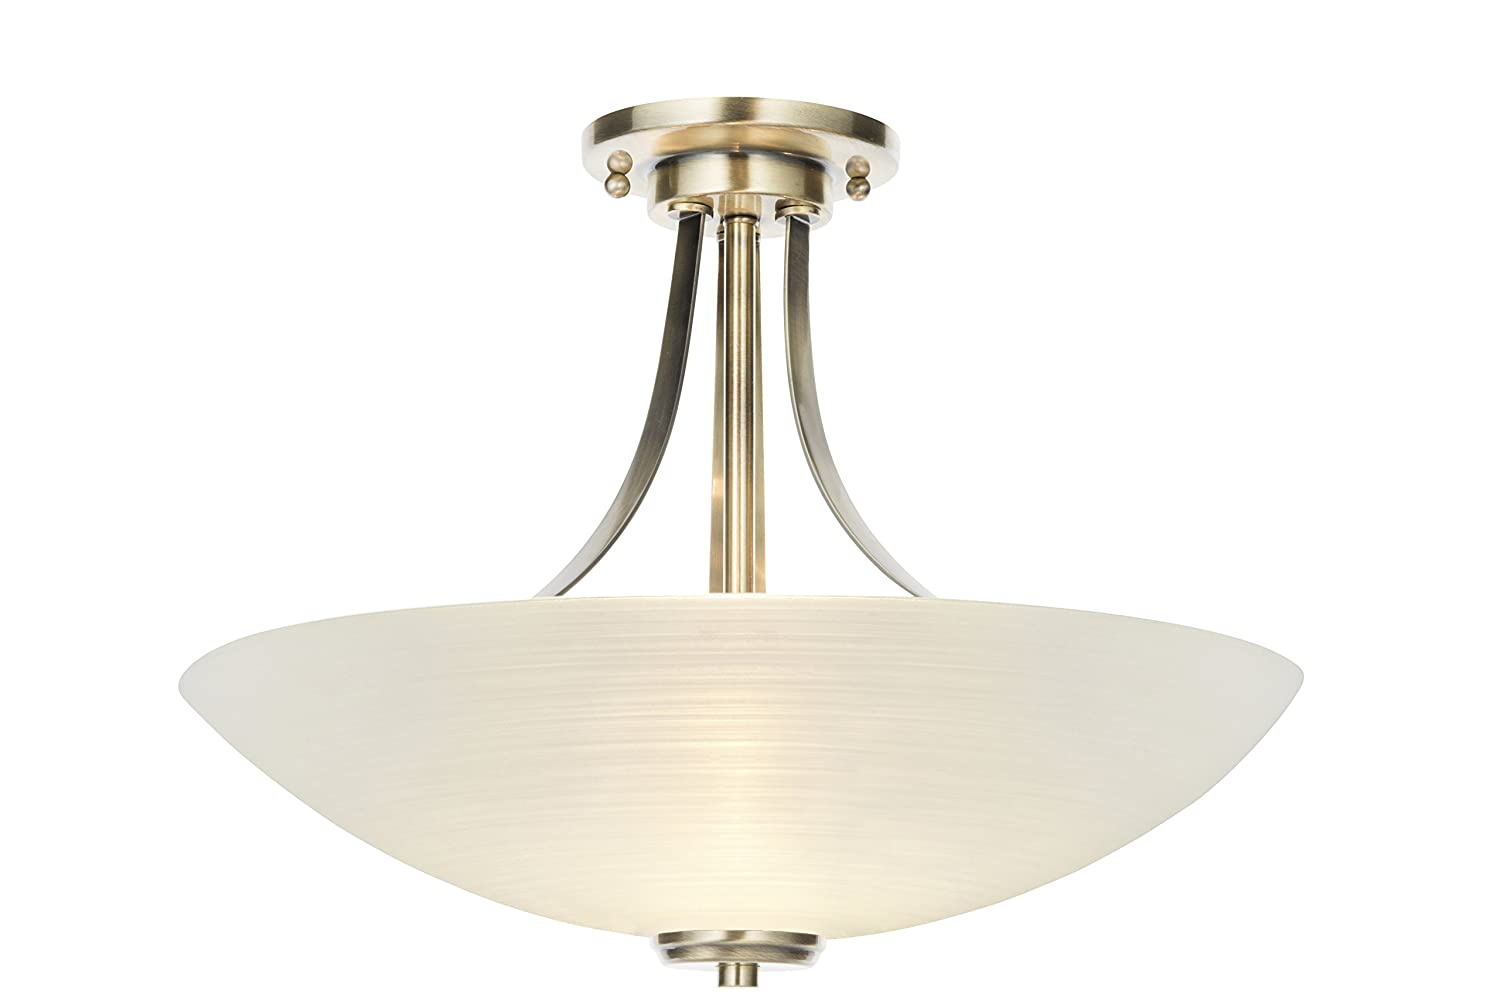 Hilton 3 light antique brass and glass semi flush ceiling light hilton 3 light antique brass and glass semi flush ceiling light fitting amazon lighting aloadofball Images